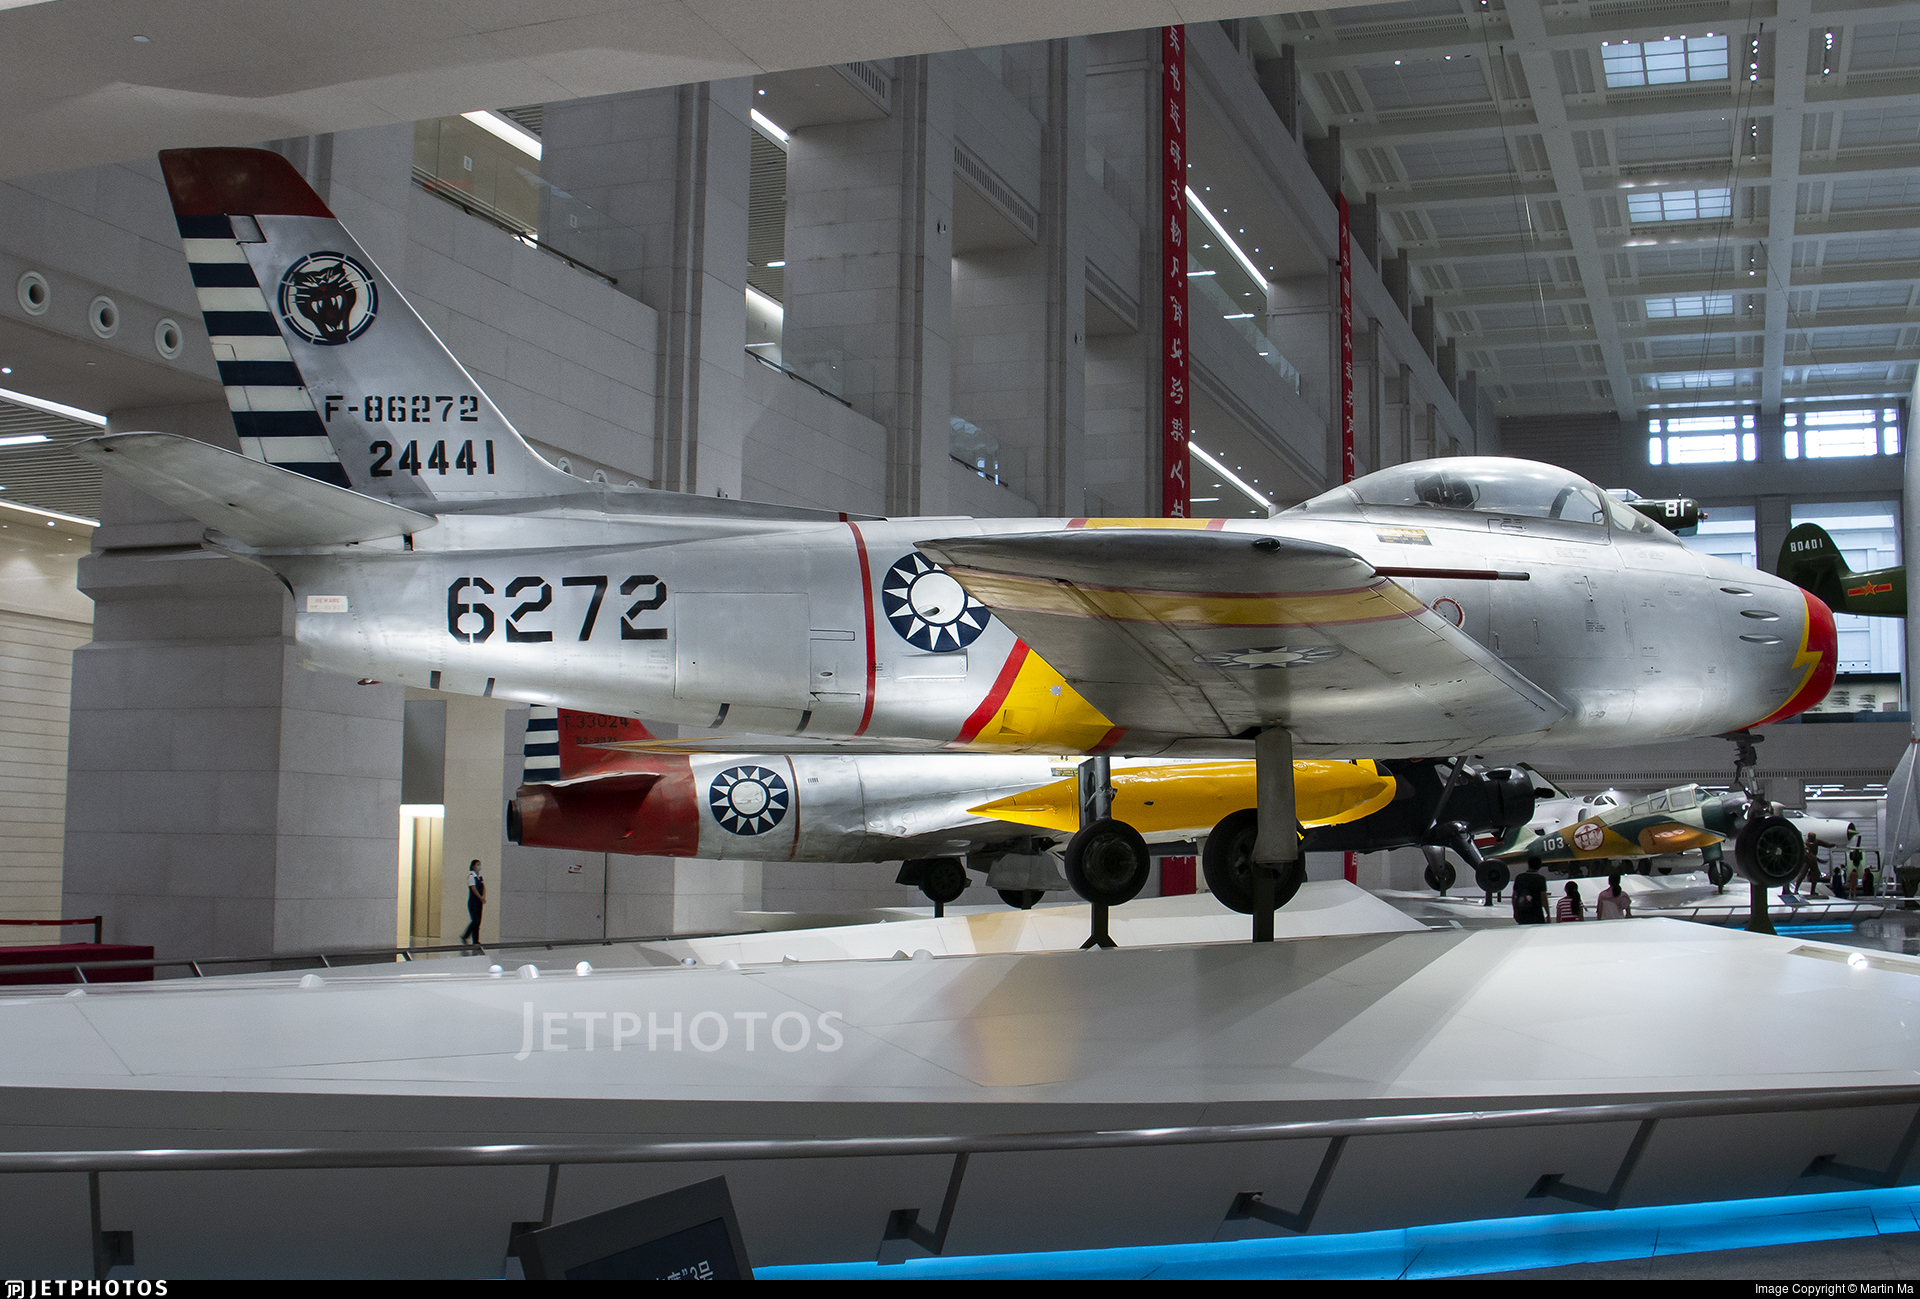 F-86272 - North American F-86F Sabre - Taiwan - Air Force